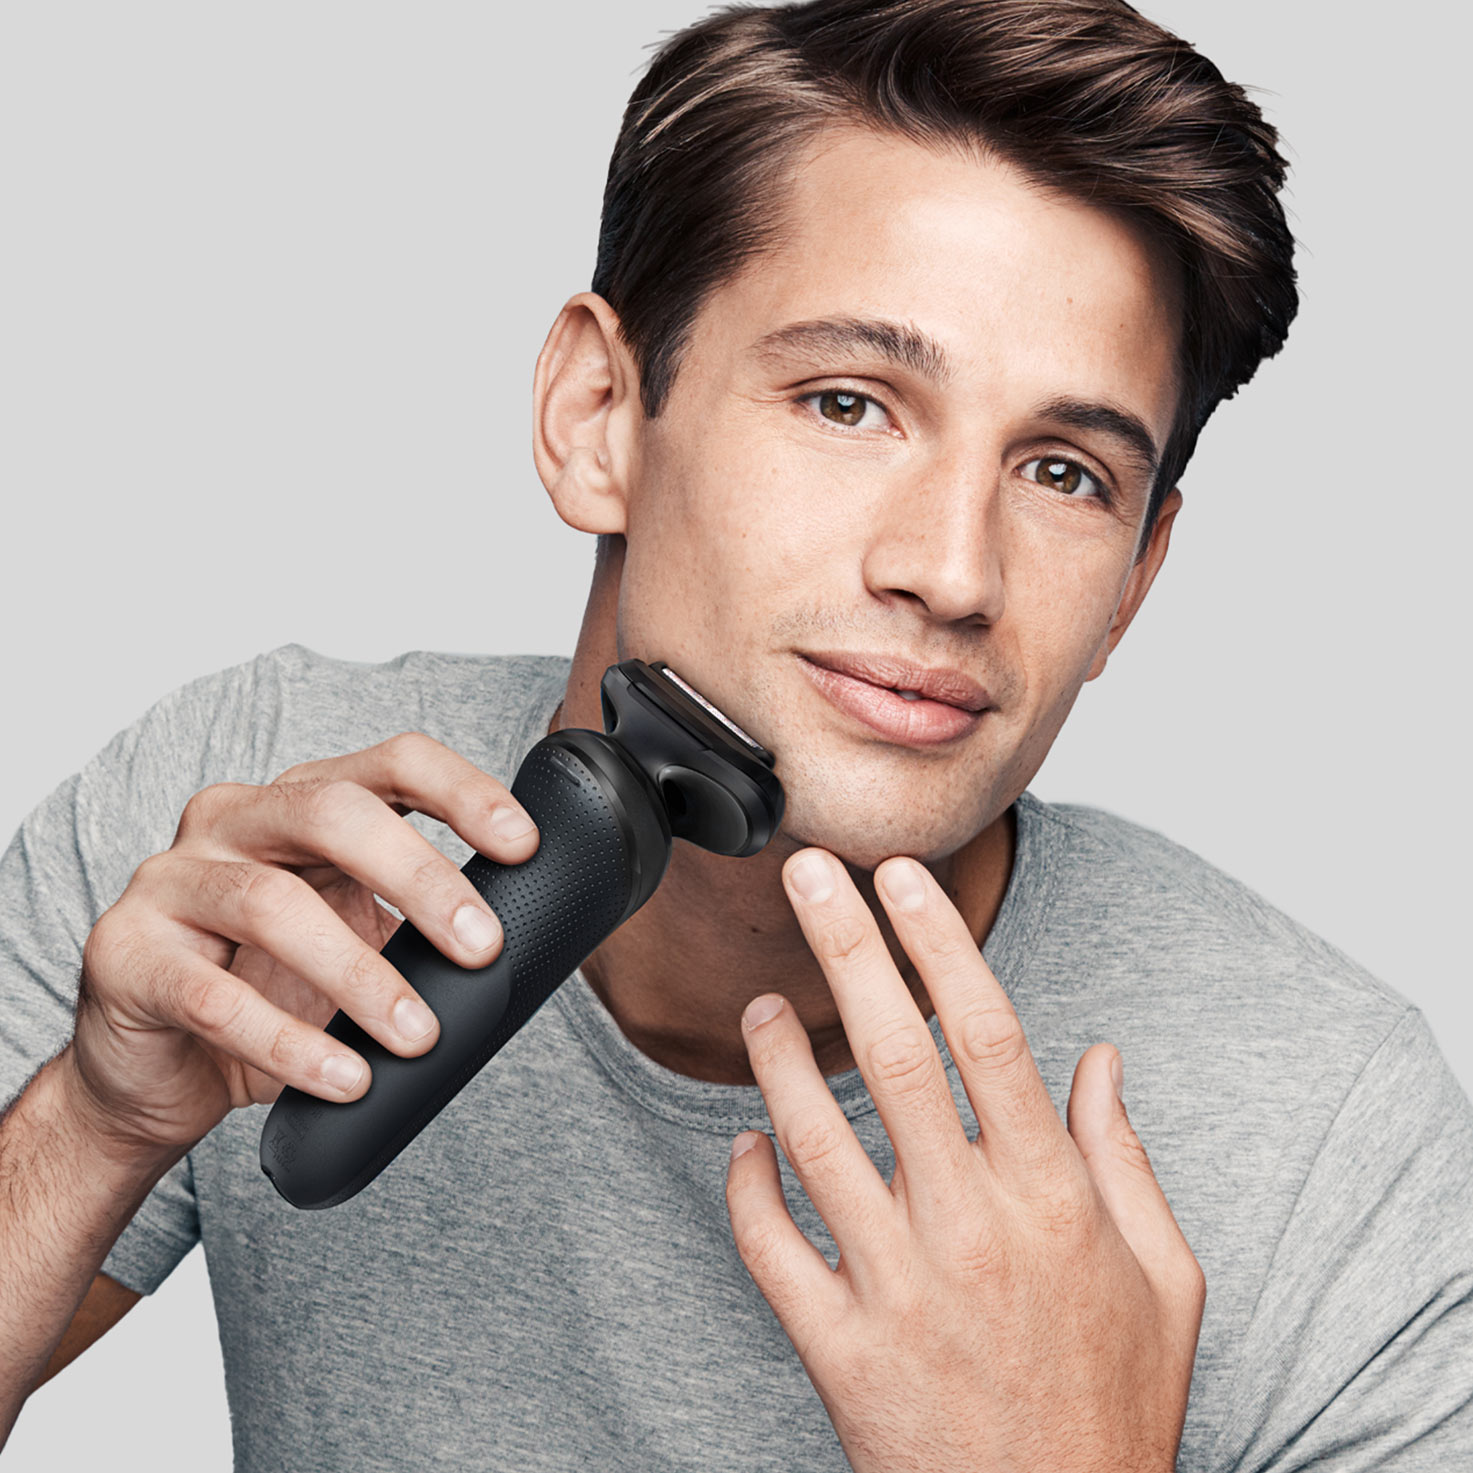 Braun Series 5 50 Electric Shaver, Design Edition